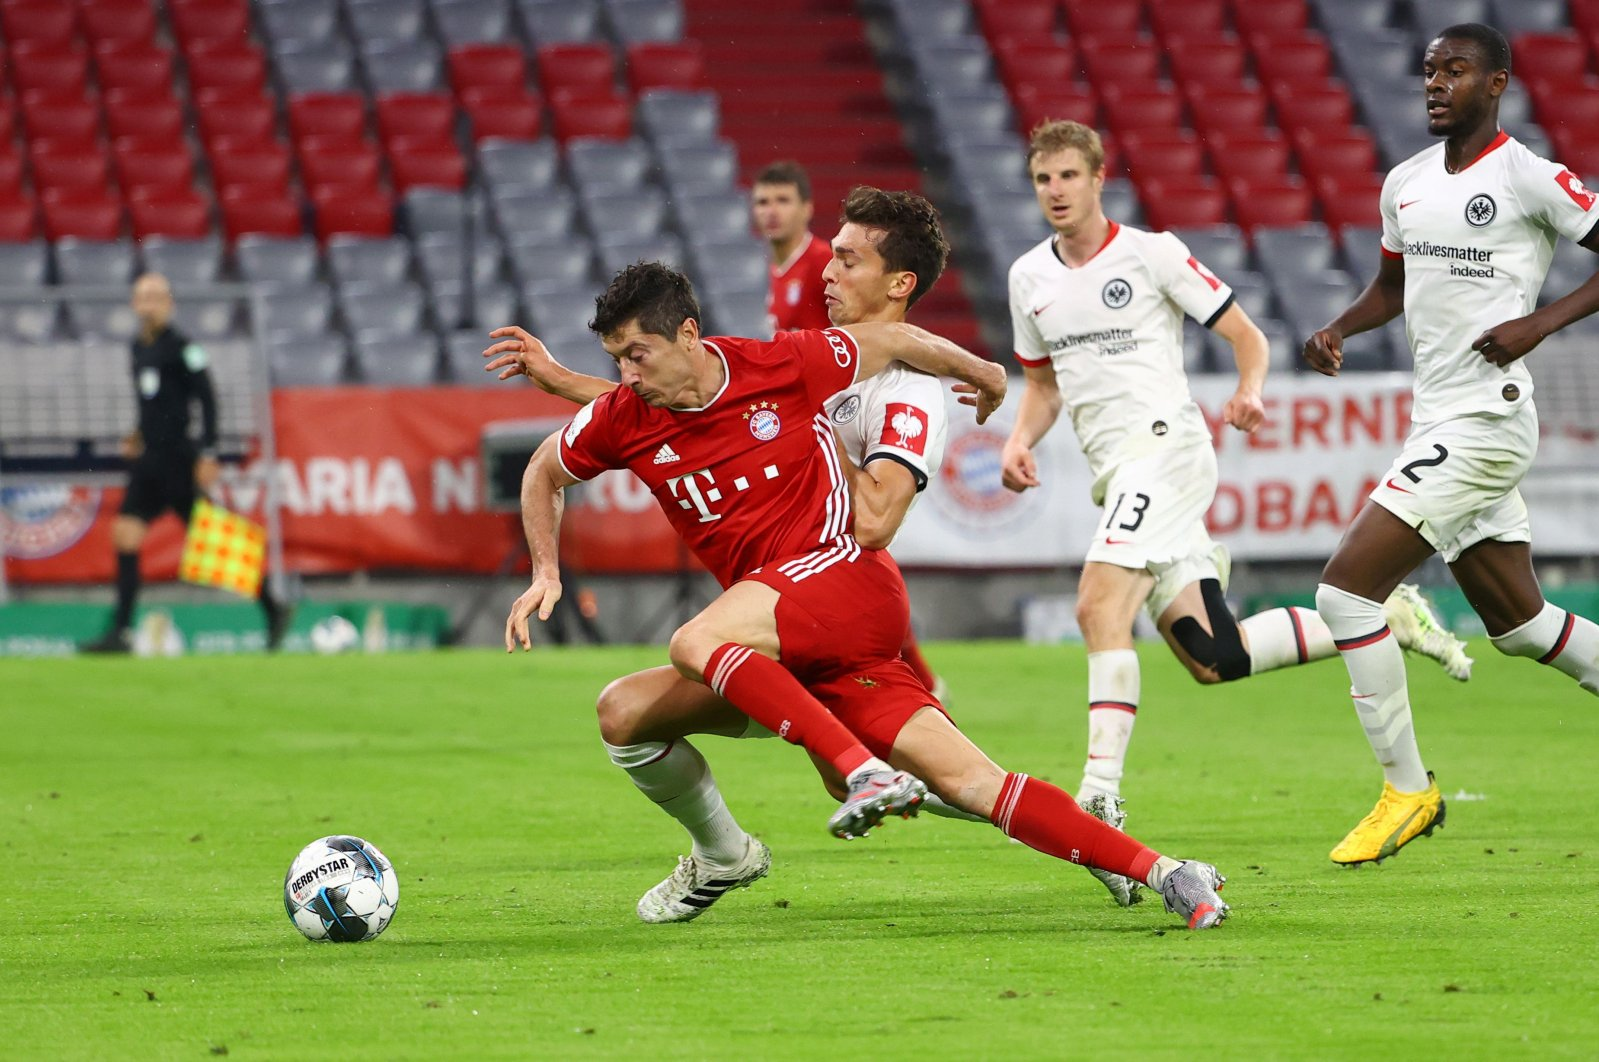 Bayern Munich's Robert Lewandowski (L) and Frankfurt's David Abraham vie for the ball during the German Cup (DFB Pokal) semifinal match in Munich, Germany, June 10, 2020. (AFP Photo)